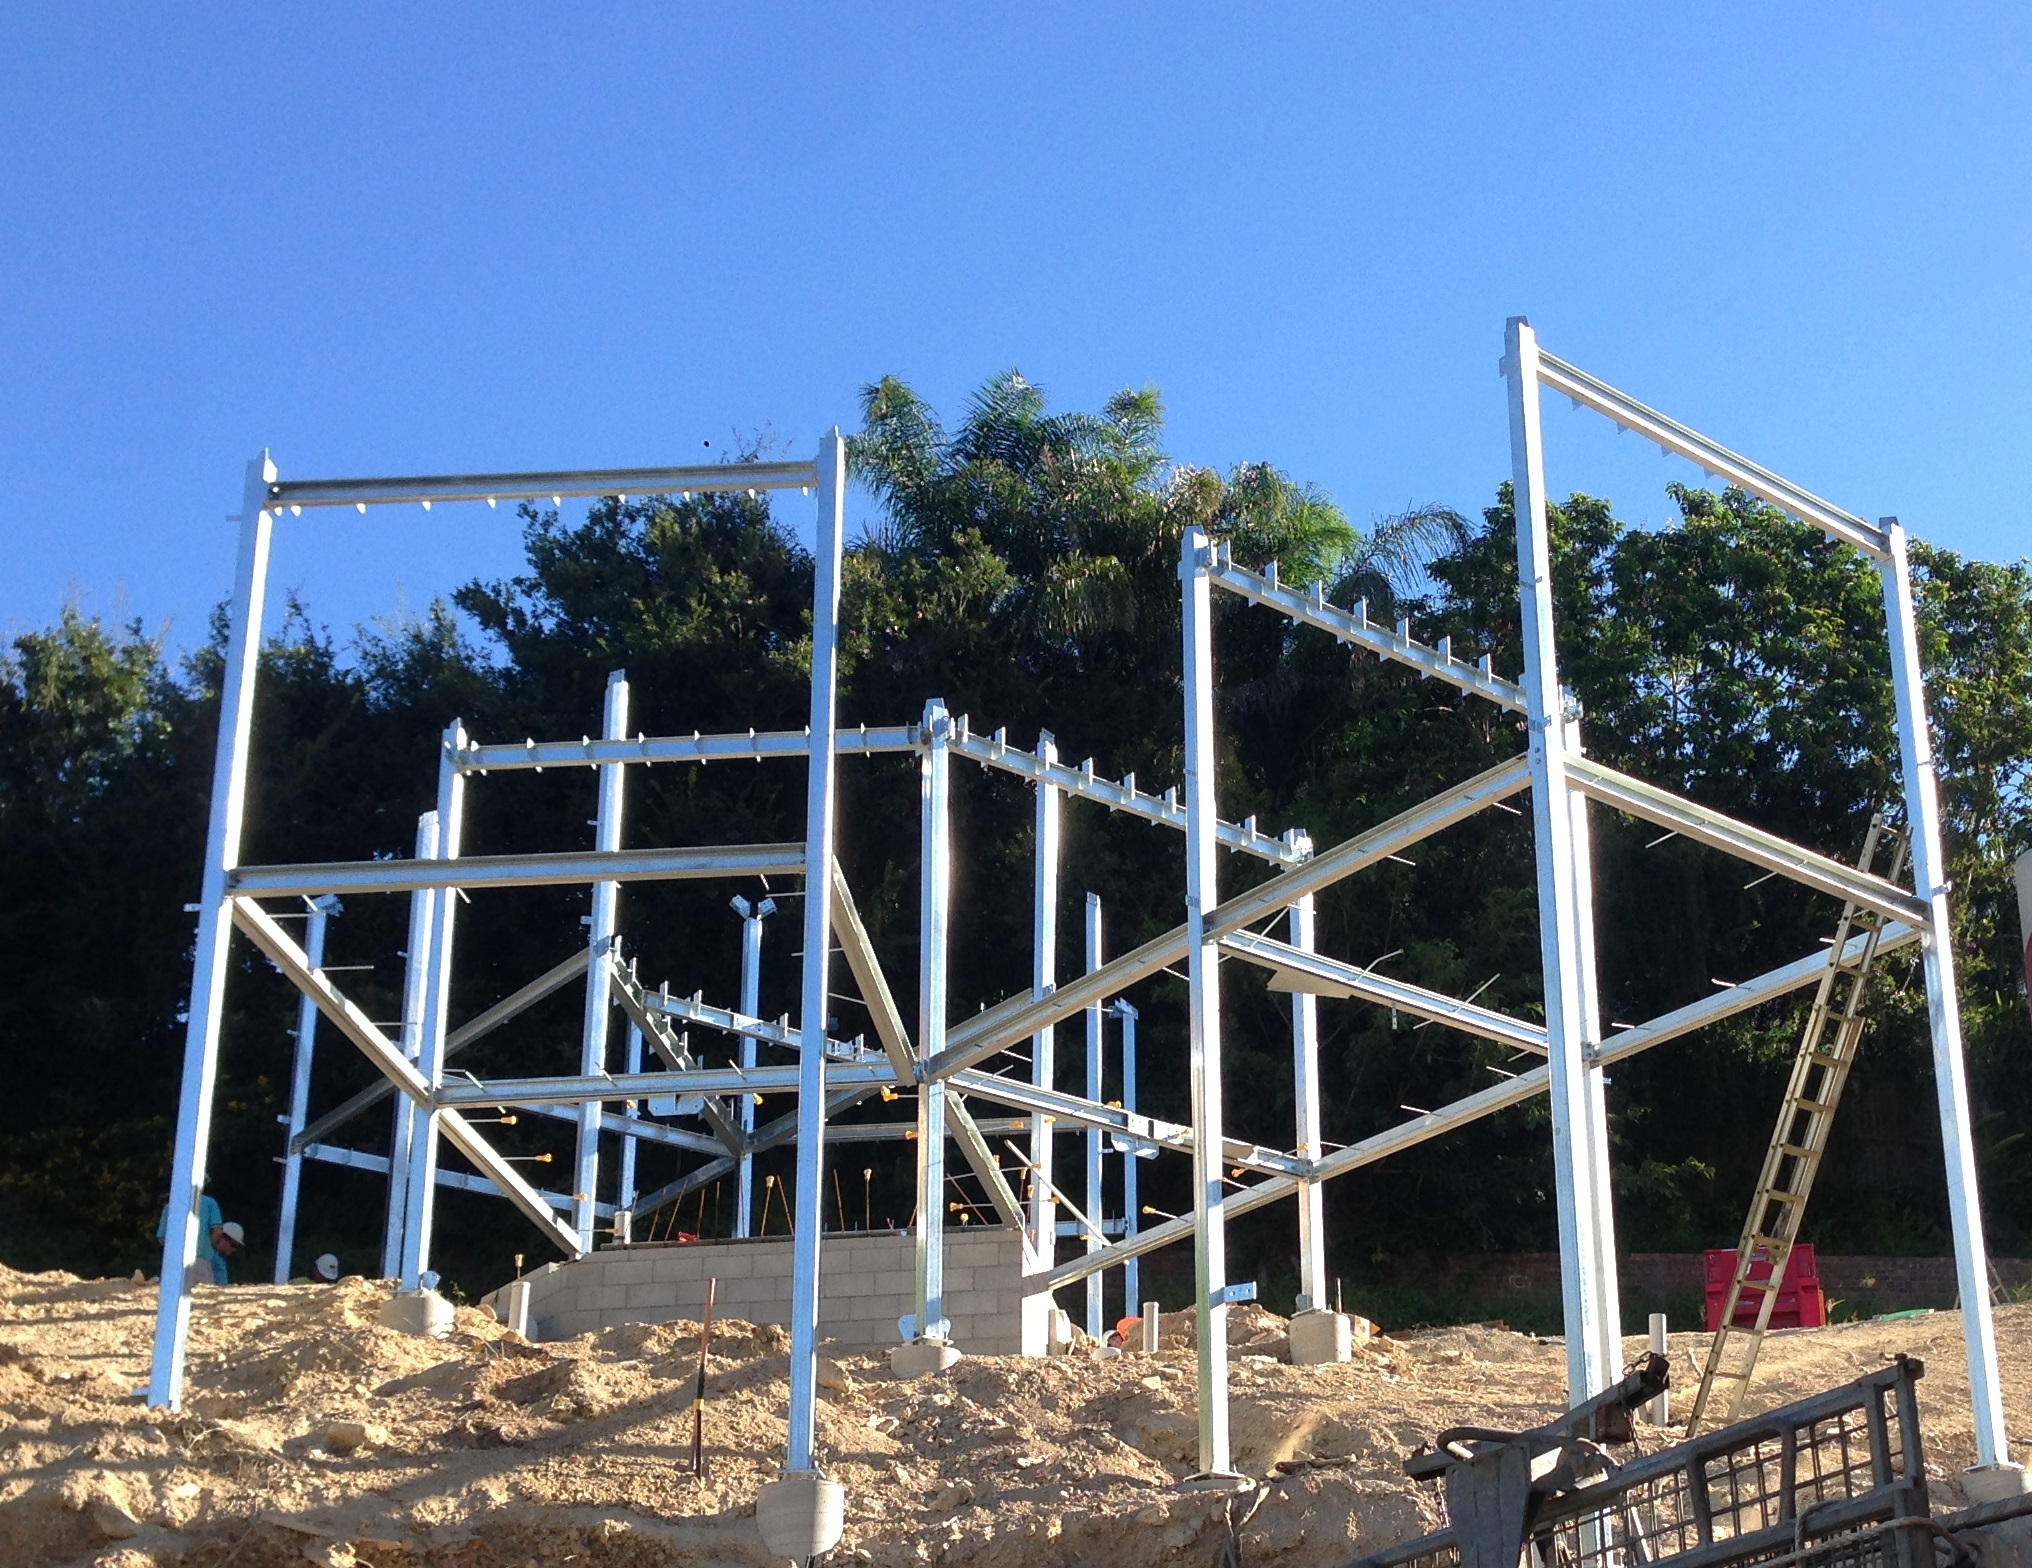 House in Hamilton Structural Steel Framework